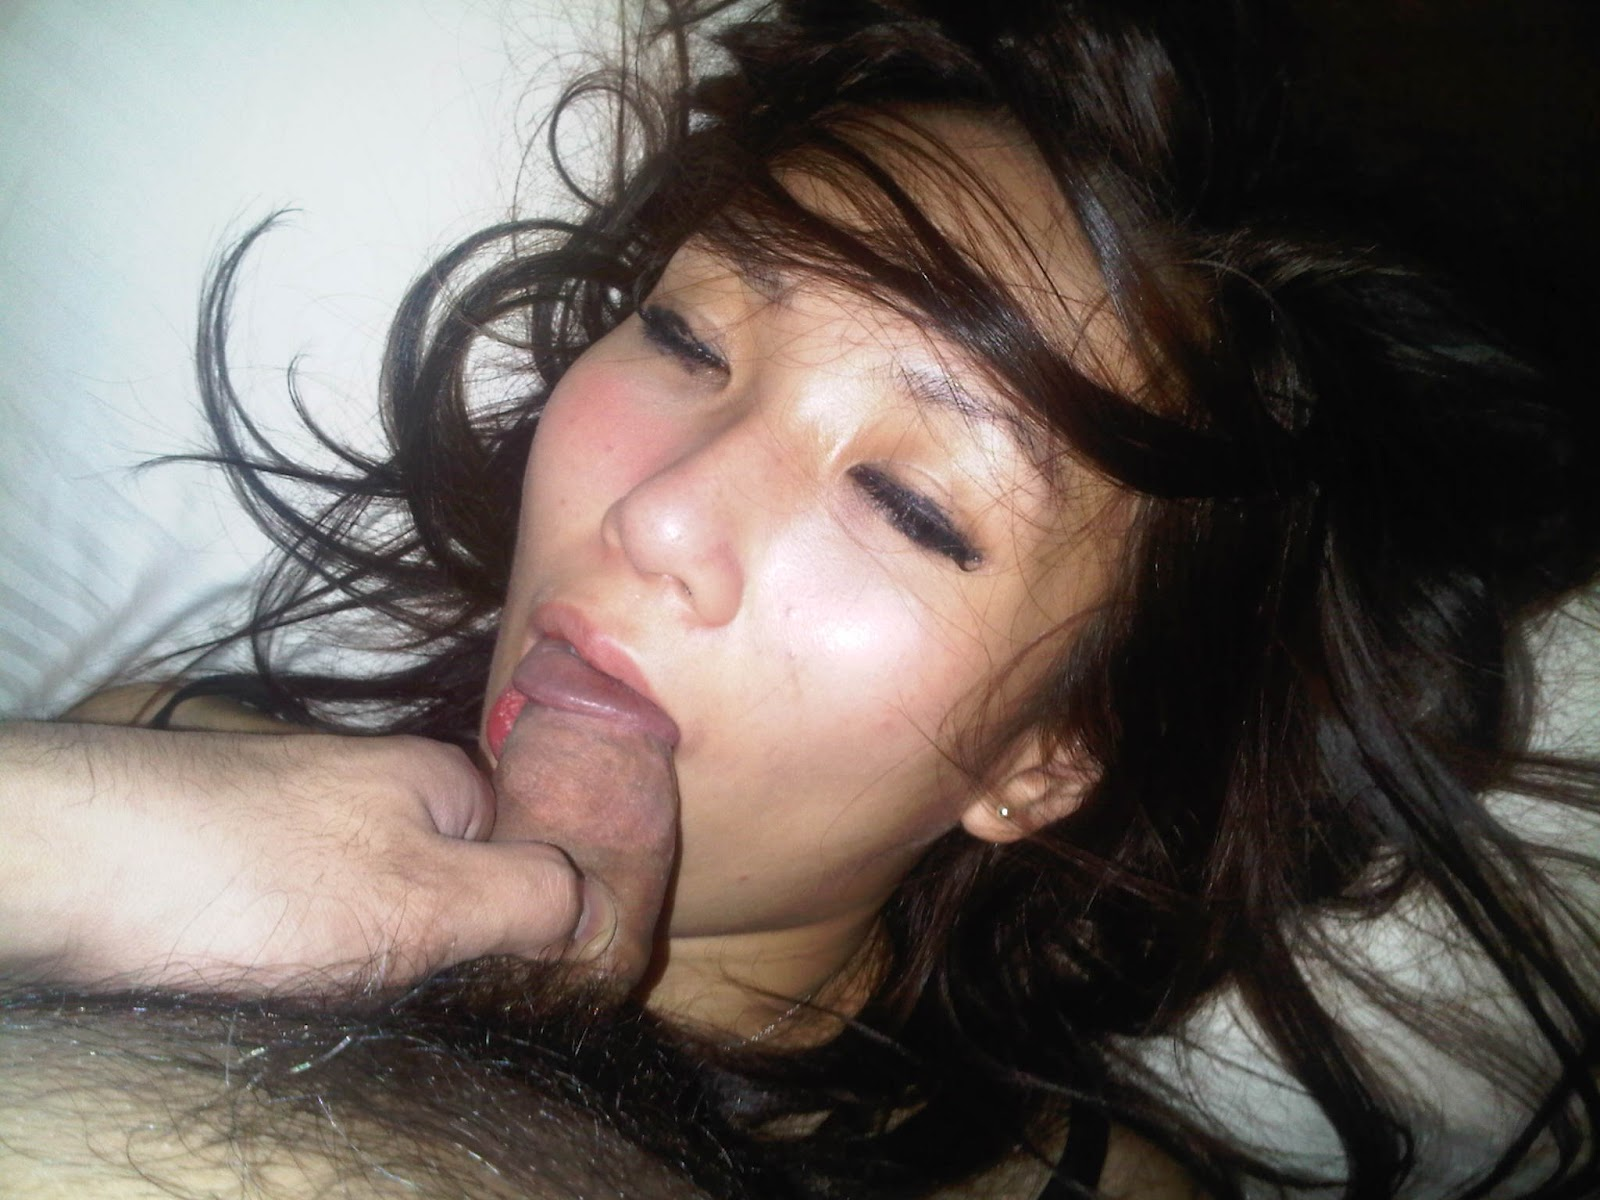 leak Japanese girlfriend naked sleep